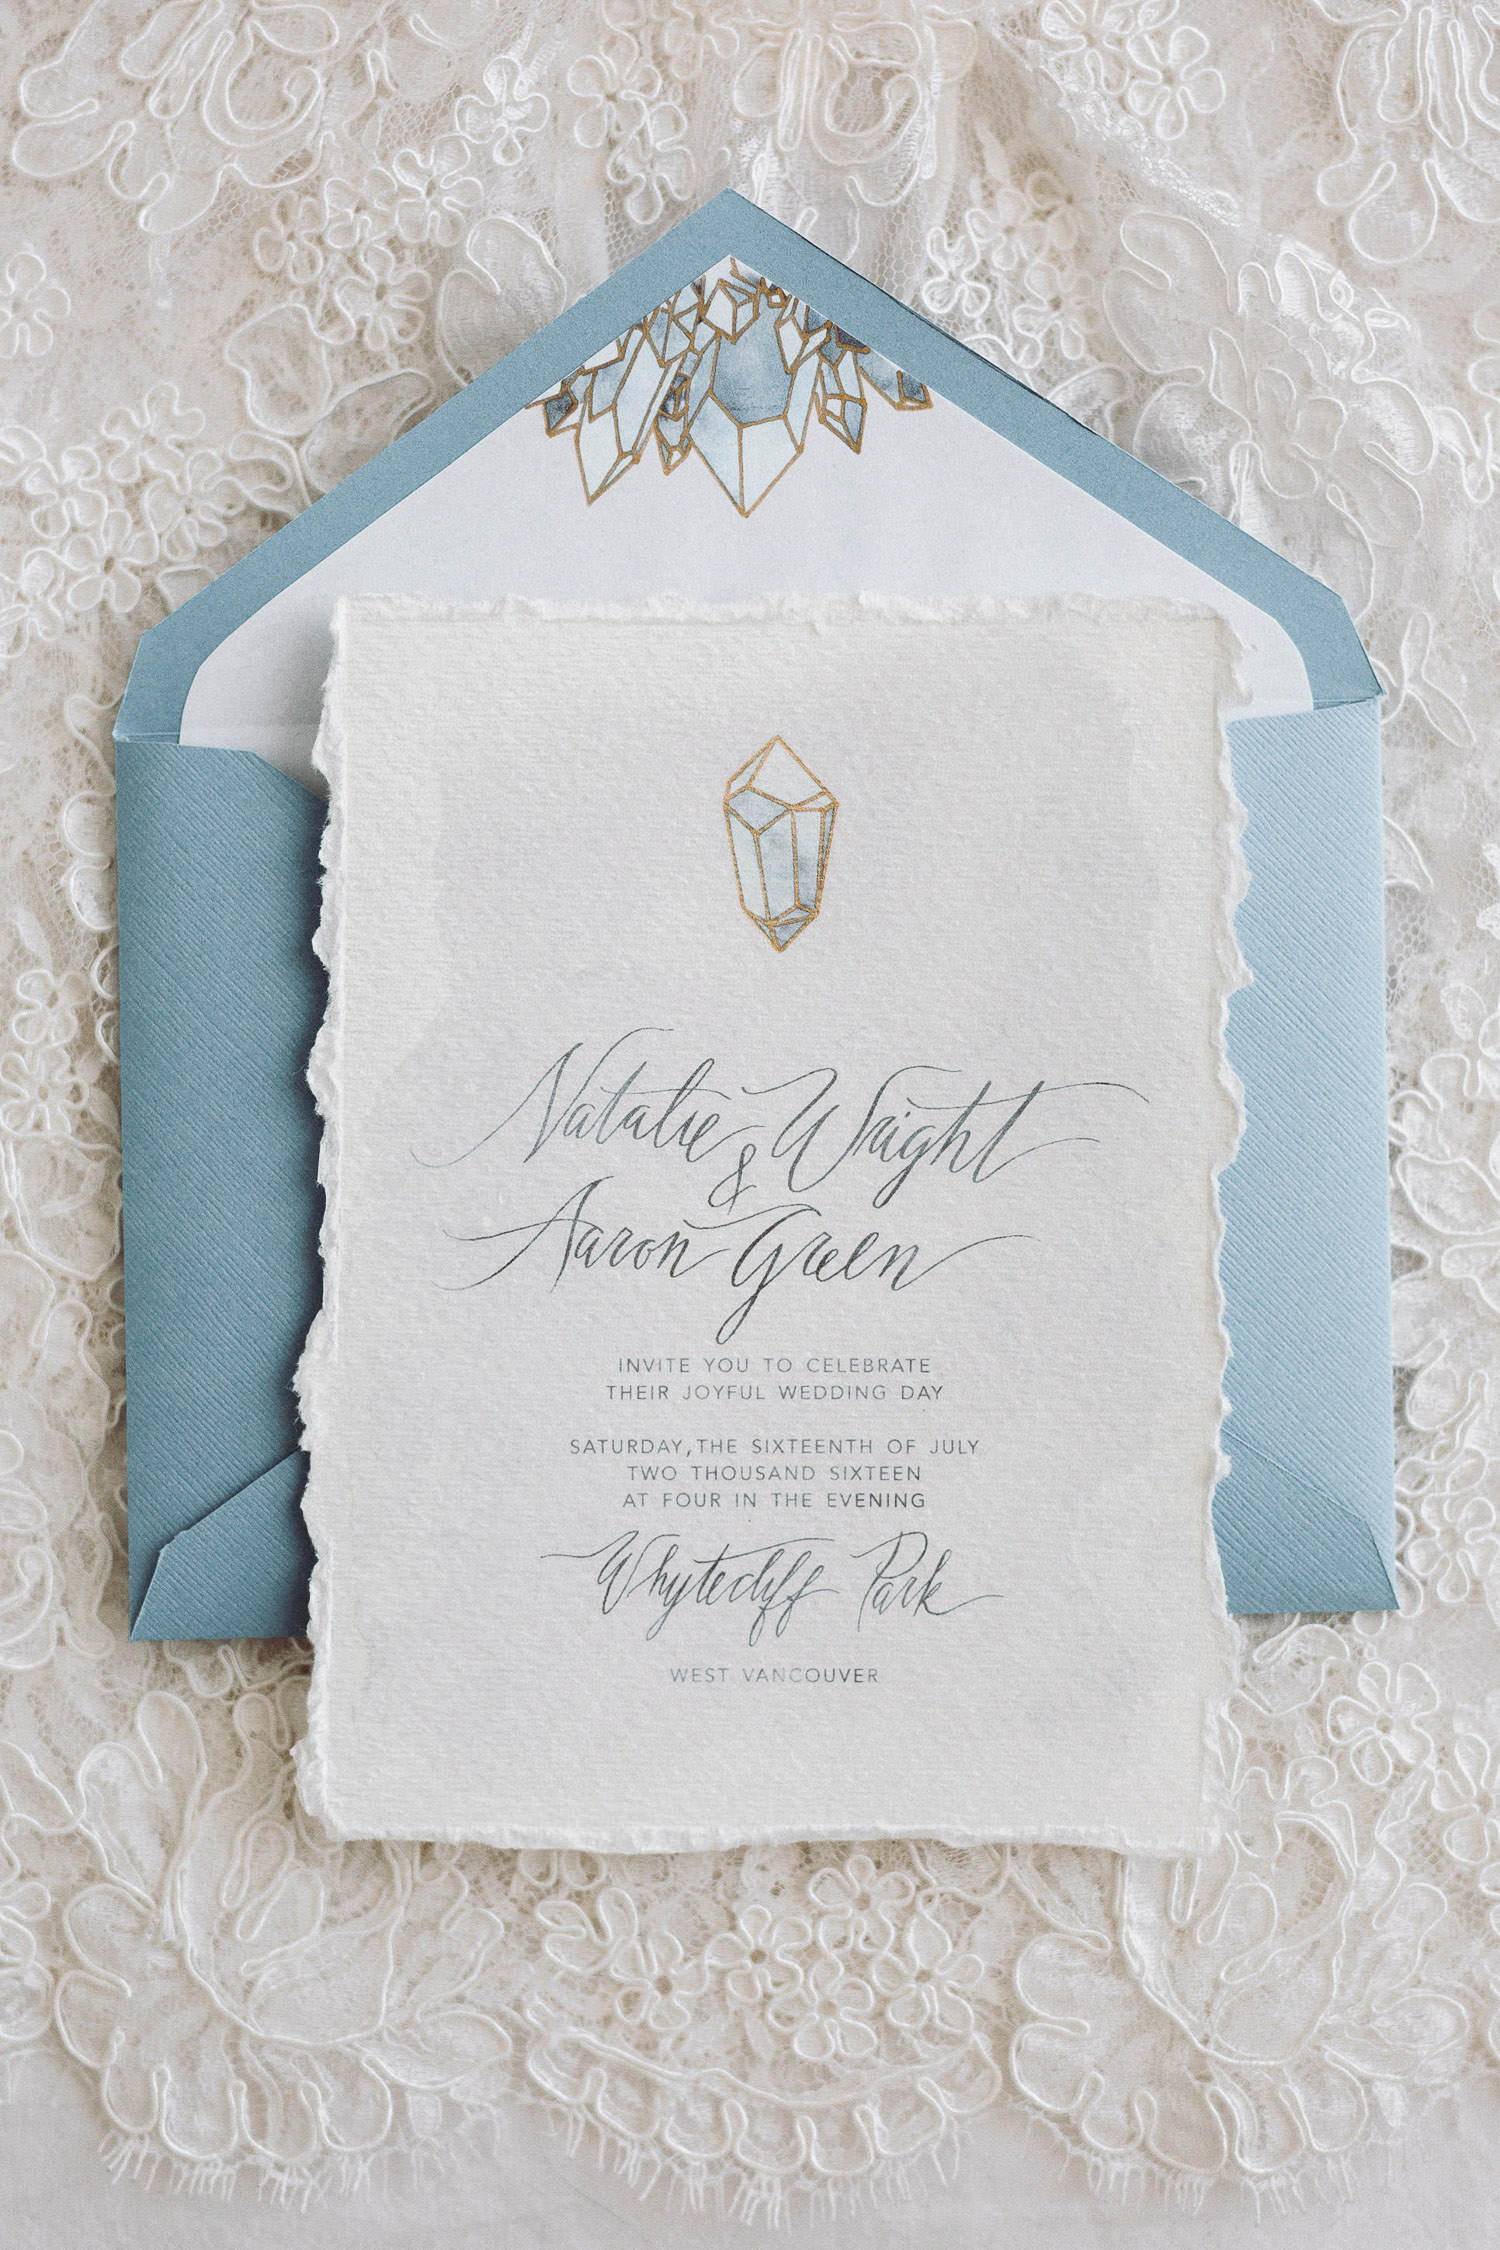 Bespoke crystal quartz inspired wedding stationery with modern calligraphy - Boho Elopement